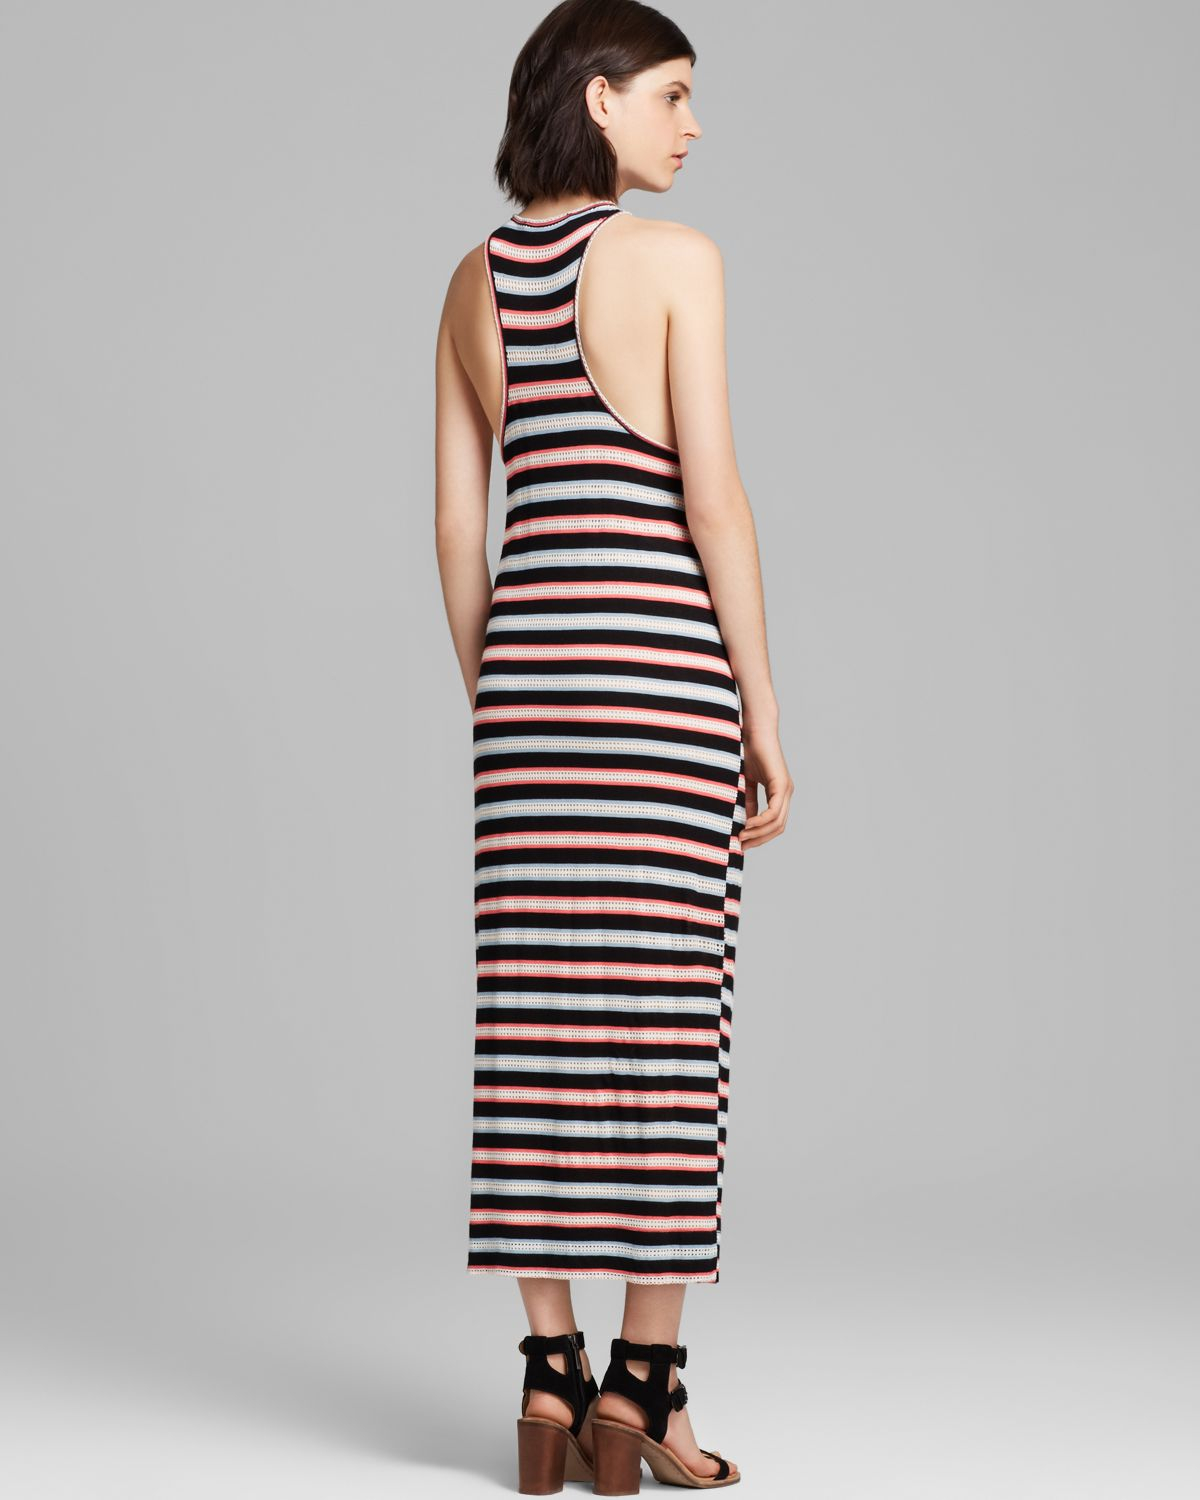 Marc by marc jacobs striped maxi dress